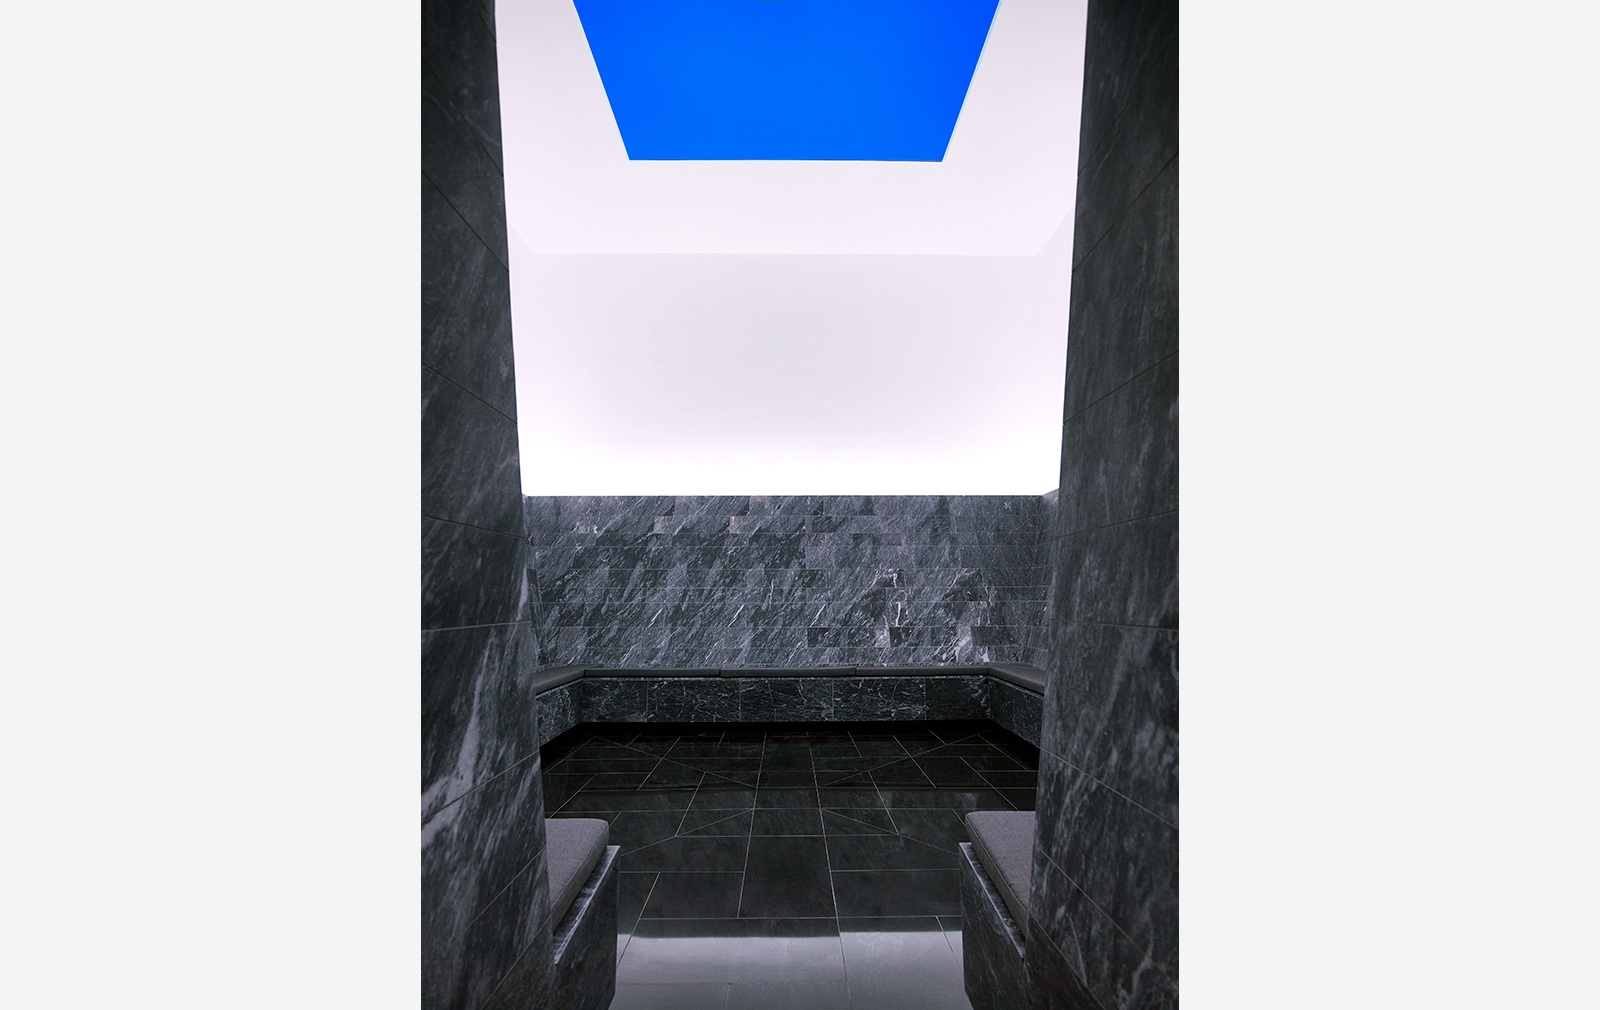 Sky Plain by James Turrell